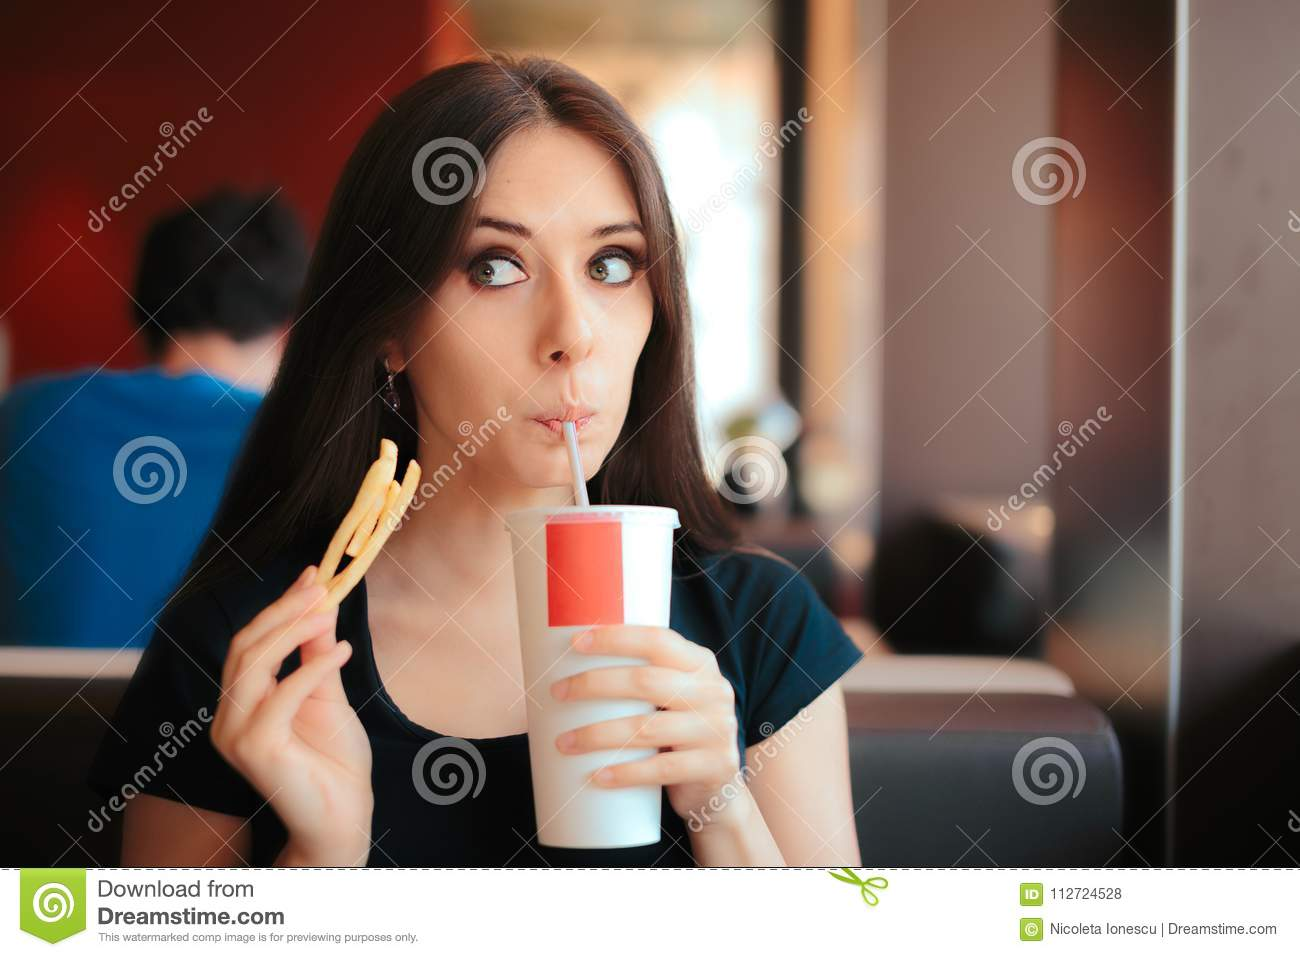 Girl Drinking Soda and Eating Fries in Fast Food Restaurant